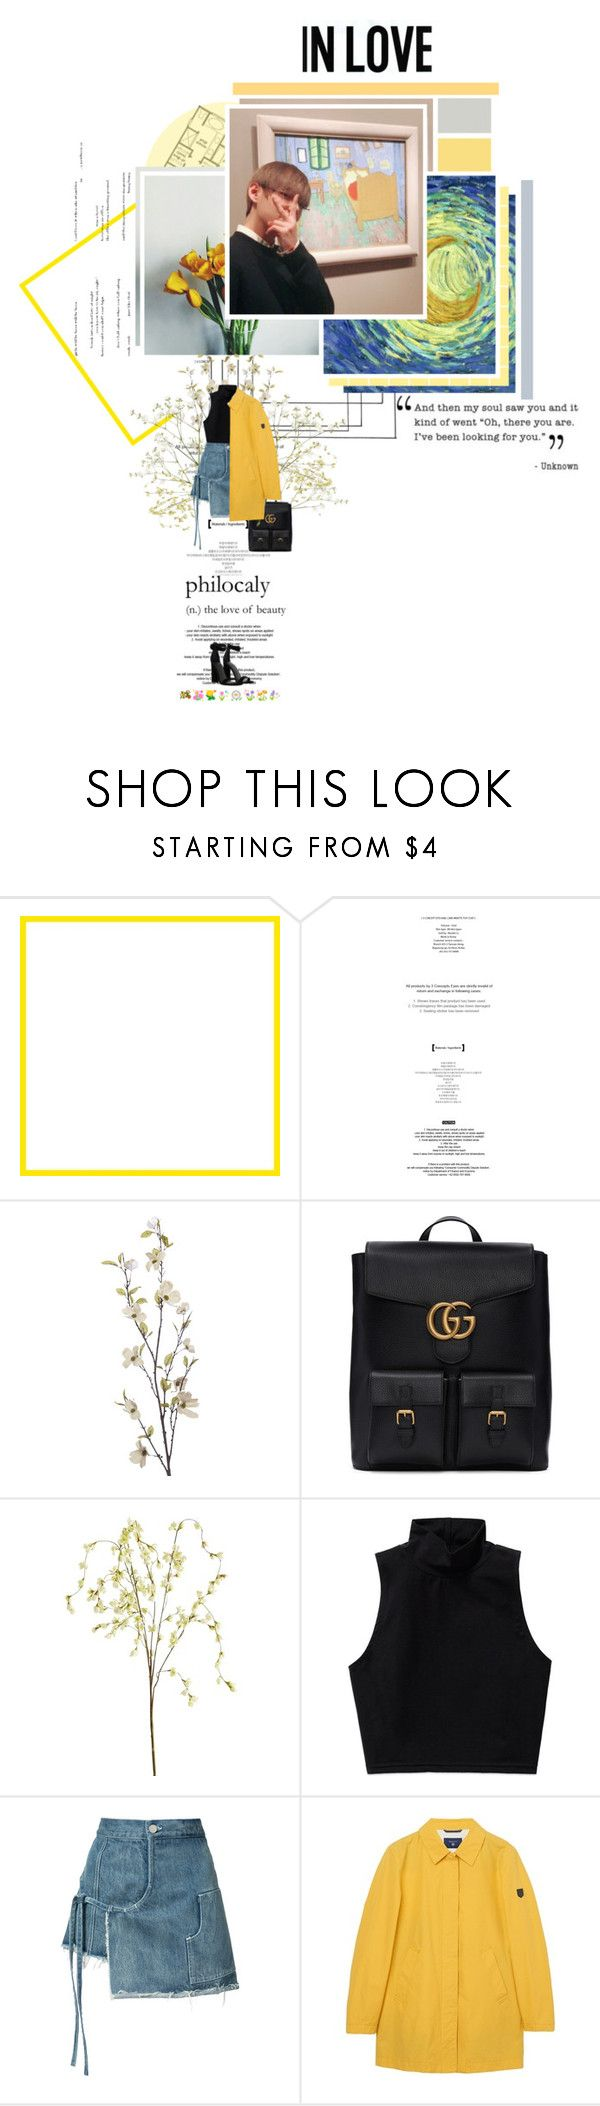 """""""🌸 ~ The Night We Met // LORD HURON ~ 🌸"""" by xxjay-gxx ❤ liked on Polyvore featuring StyleNanda, Pier 1 Imports, Gucci, Talula, Sandy Liang, GANT, Kendall + Kylie, bts, taehyung and TaeTae"""